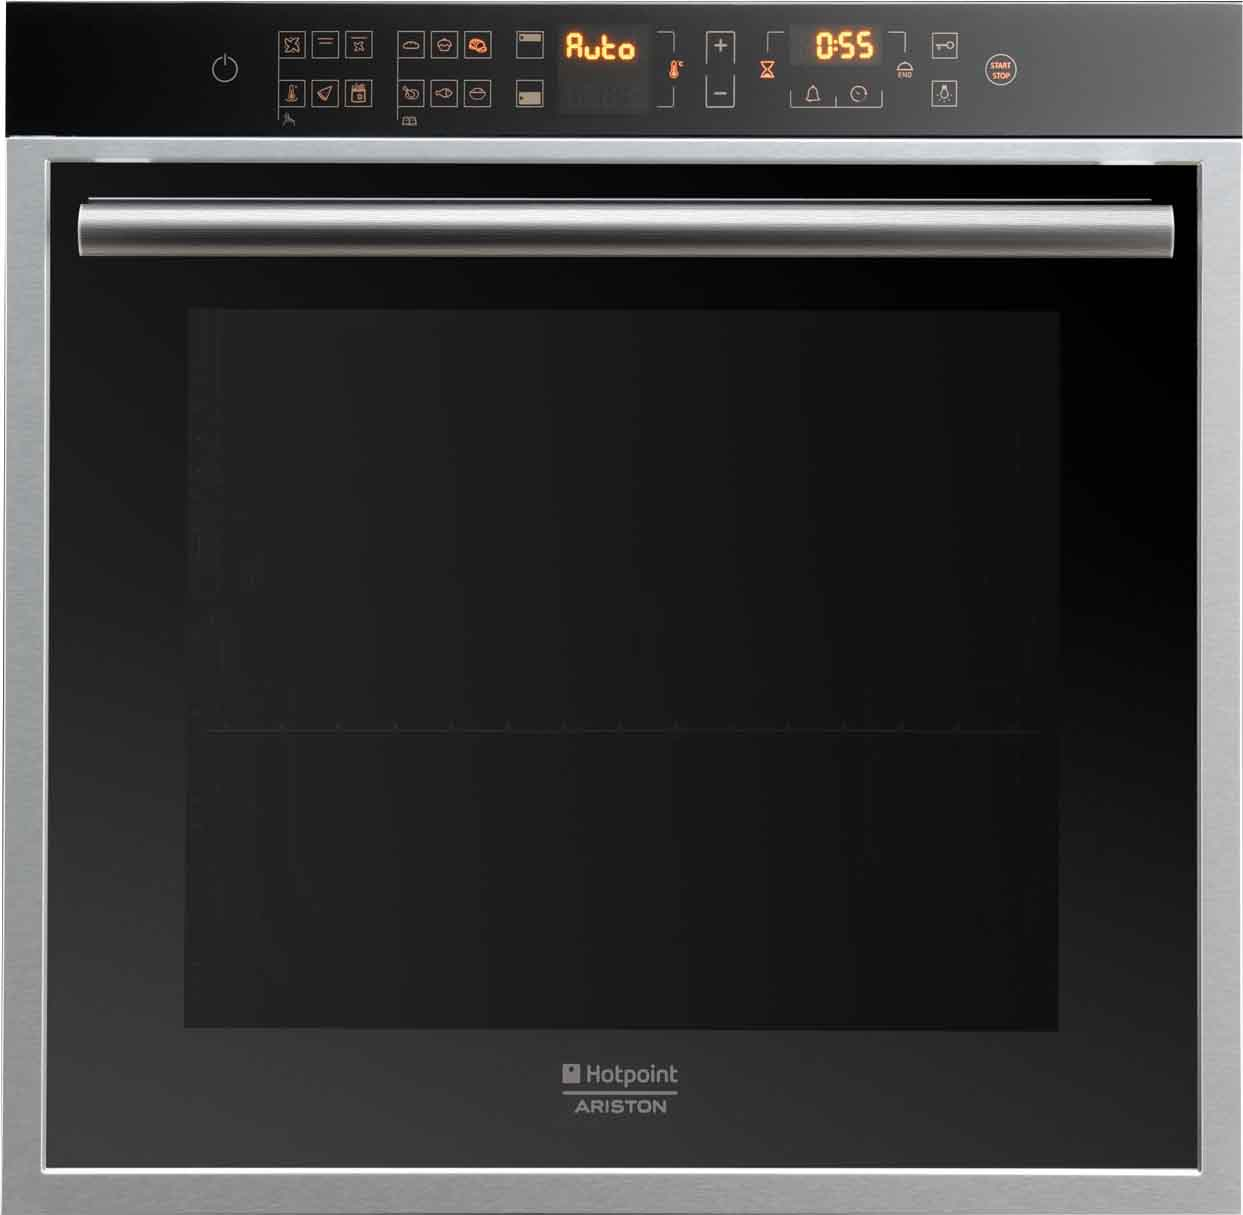 Forno ariston ok 1037el x ha s forno da incasso - Ariston forno da incasso ...